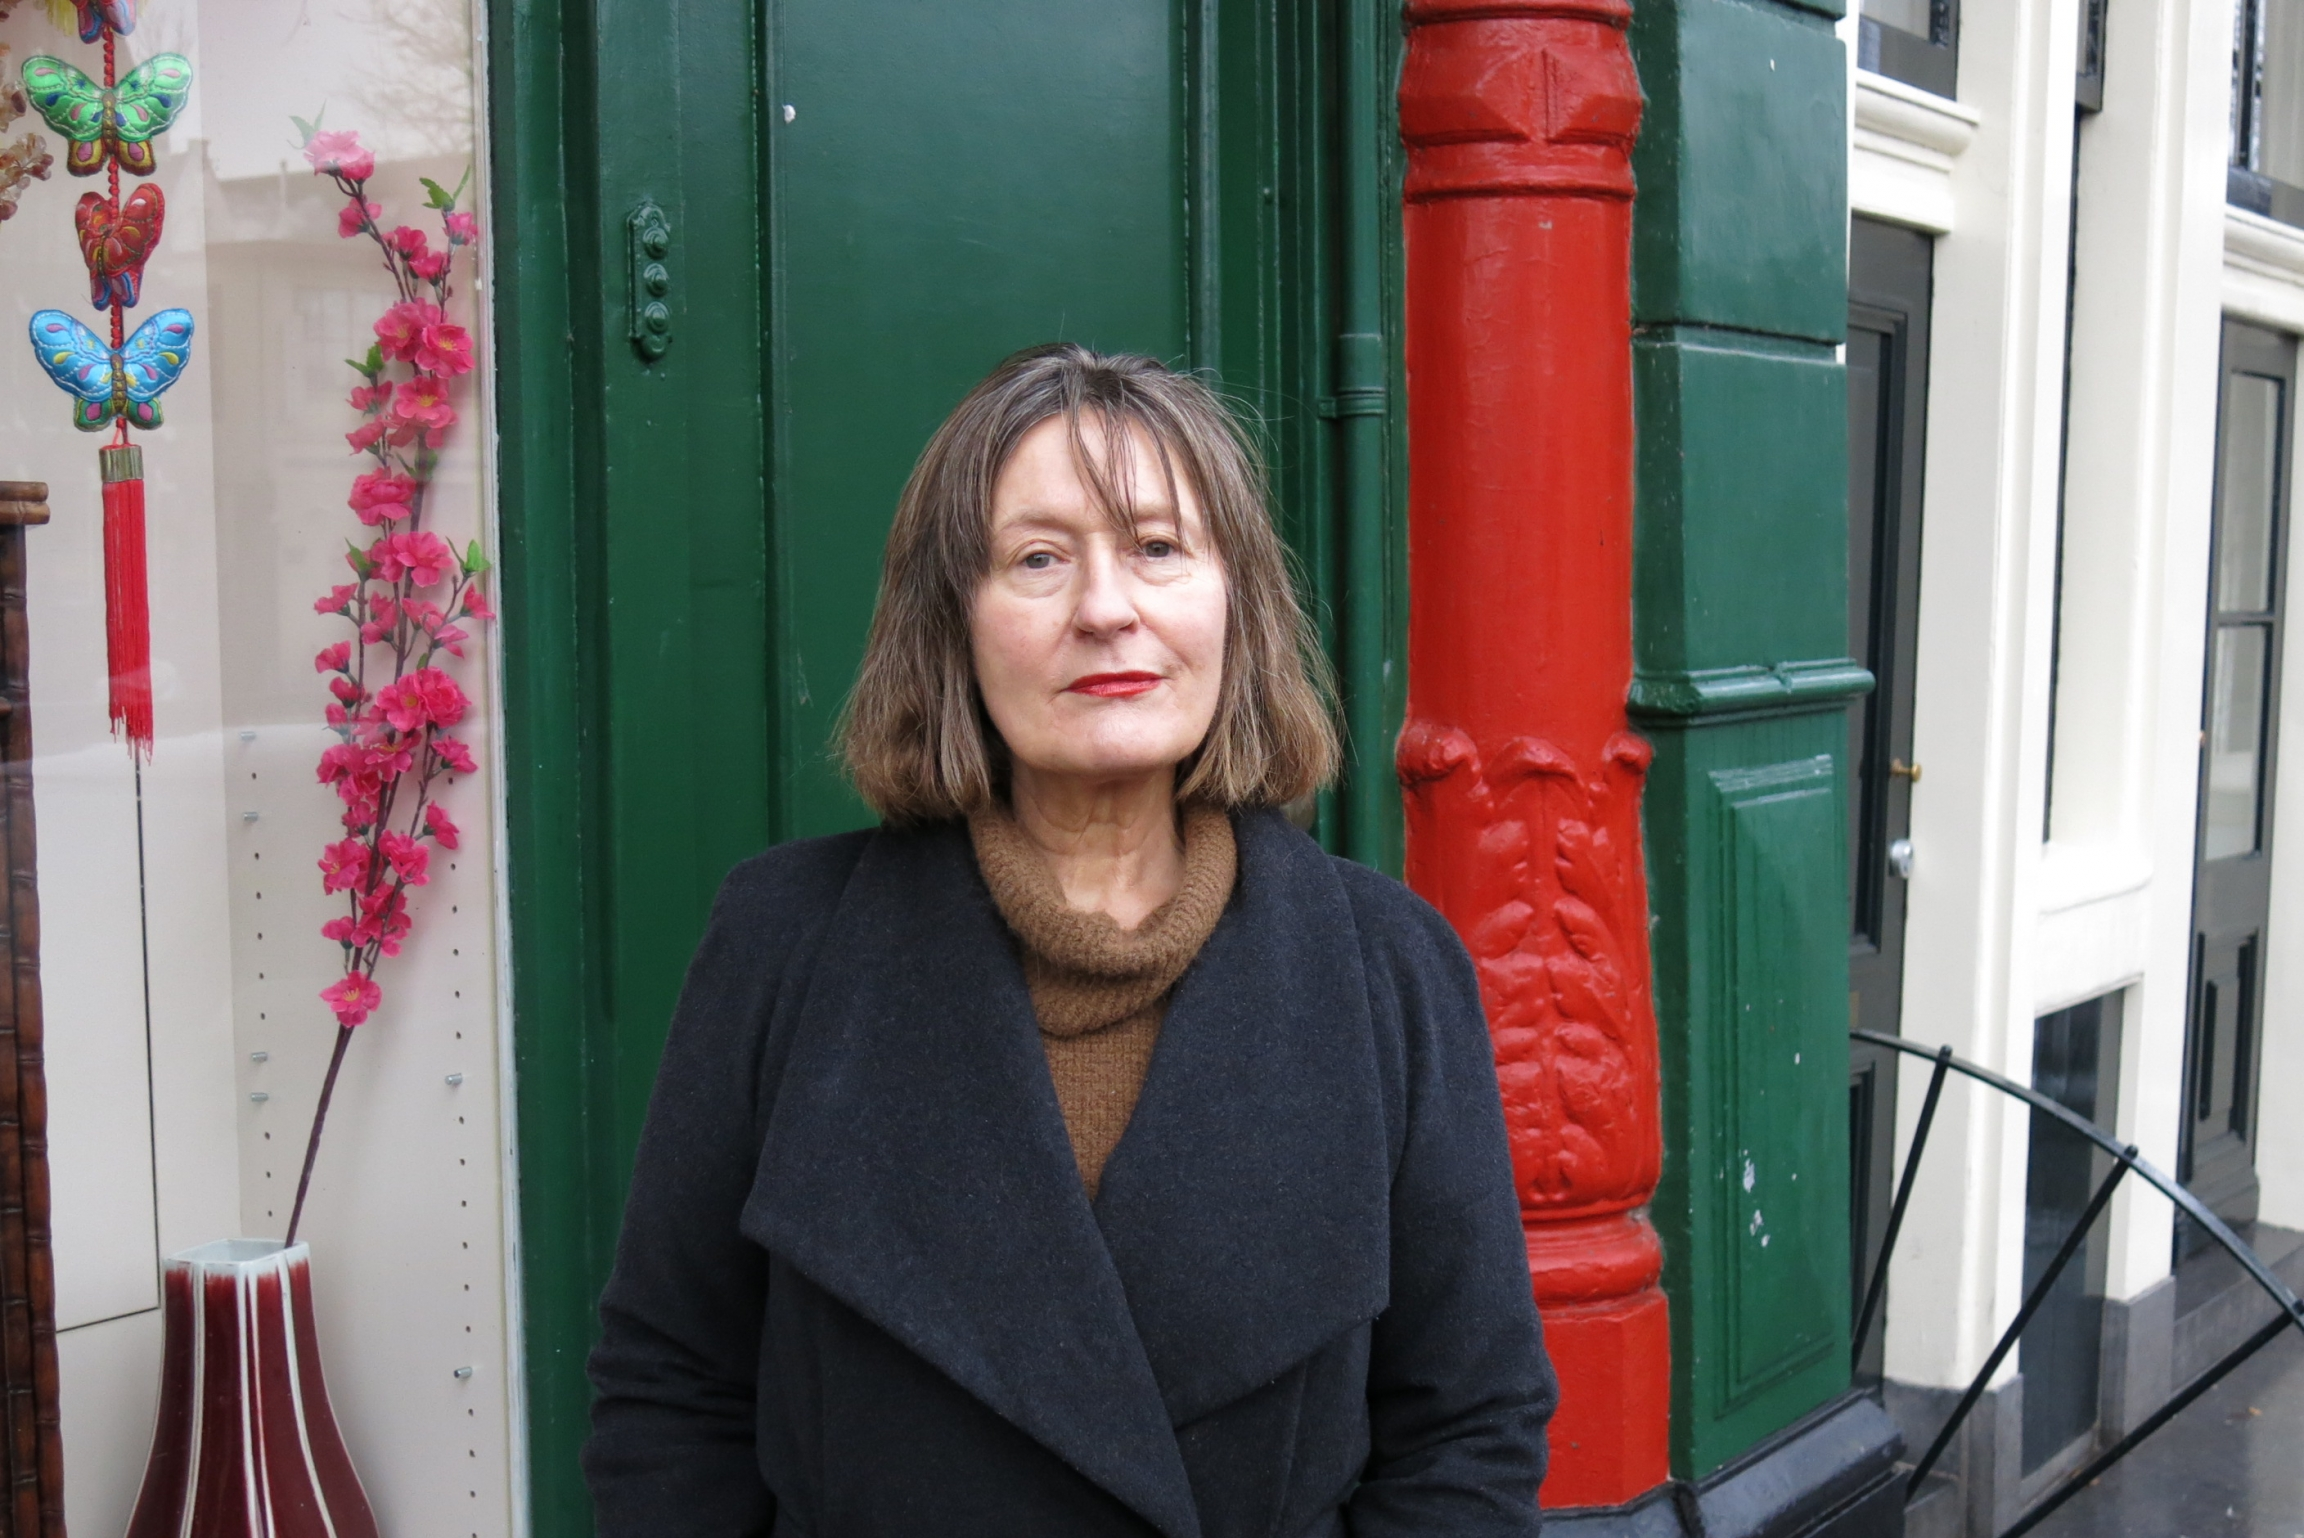 A woman stands before a green door with a red-painted pillar.